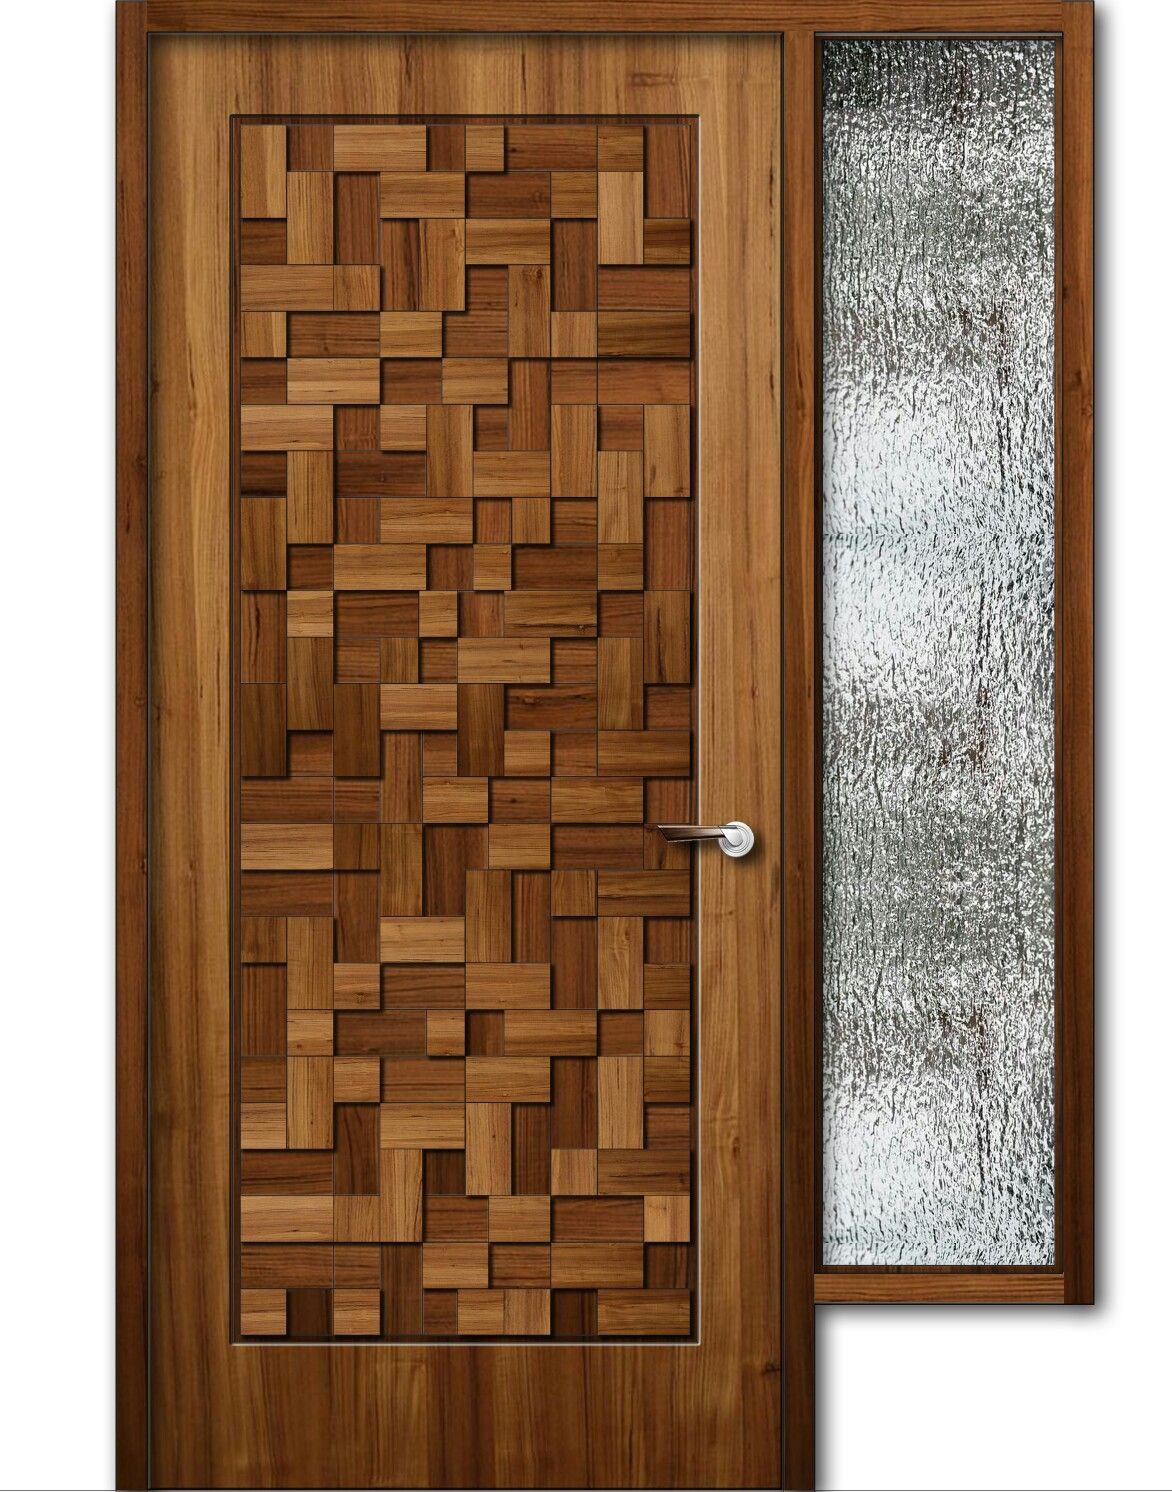 Glamorous Teak Wood Finish Wooden Door With Window, 8Feet Height | Doors pertaining to Best of Door And Window Design Image